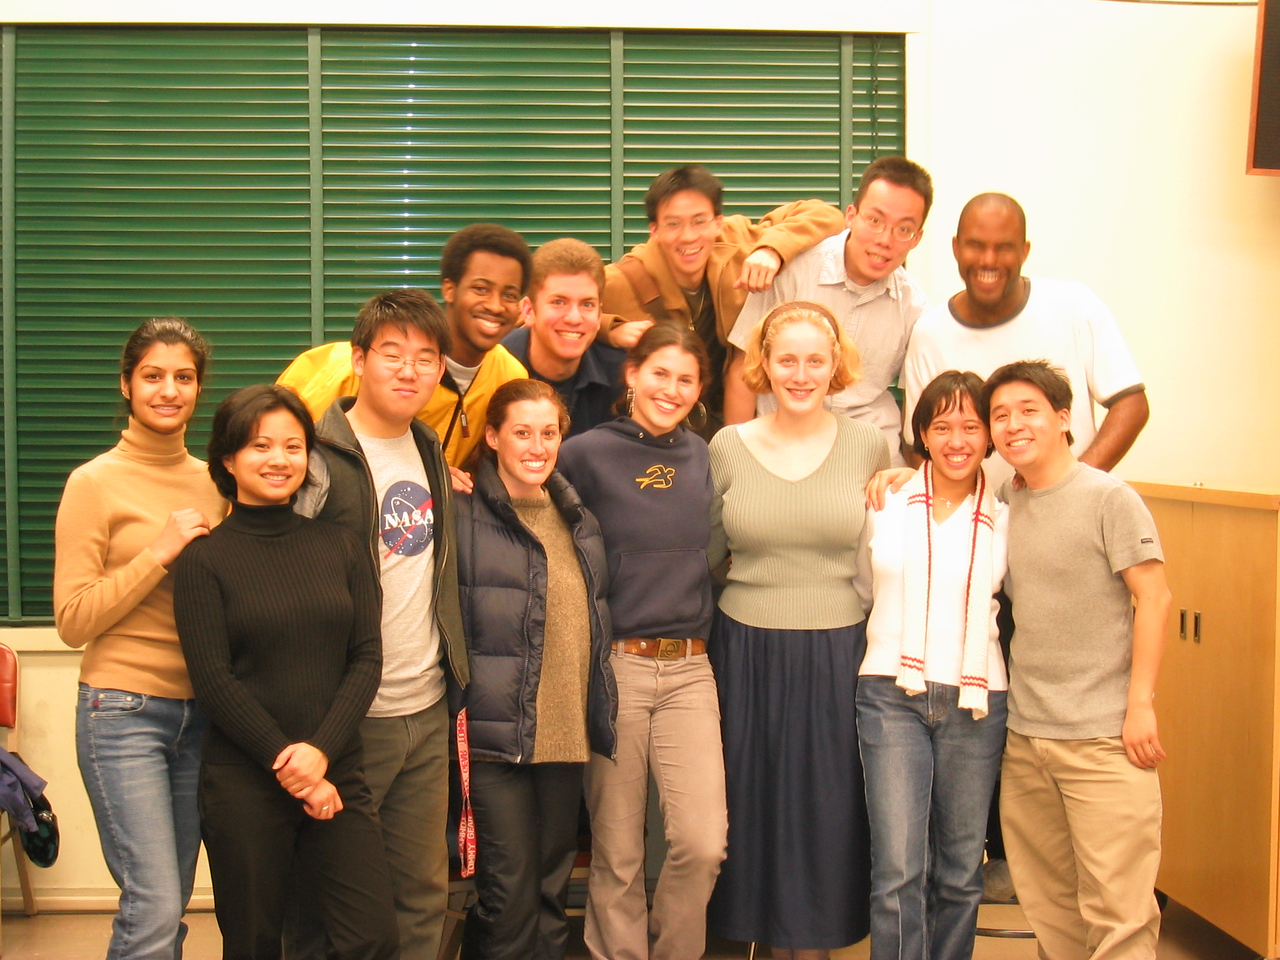 AiR Spring 2003 - Group photo @ 1st rehearsal - with flash, 1-21-2003